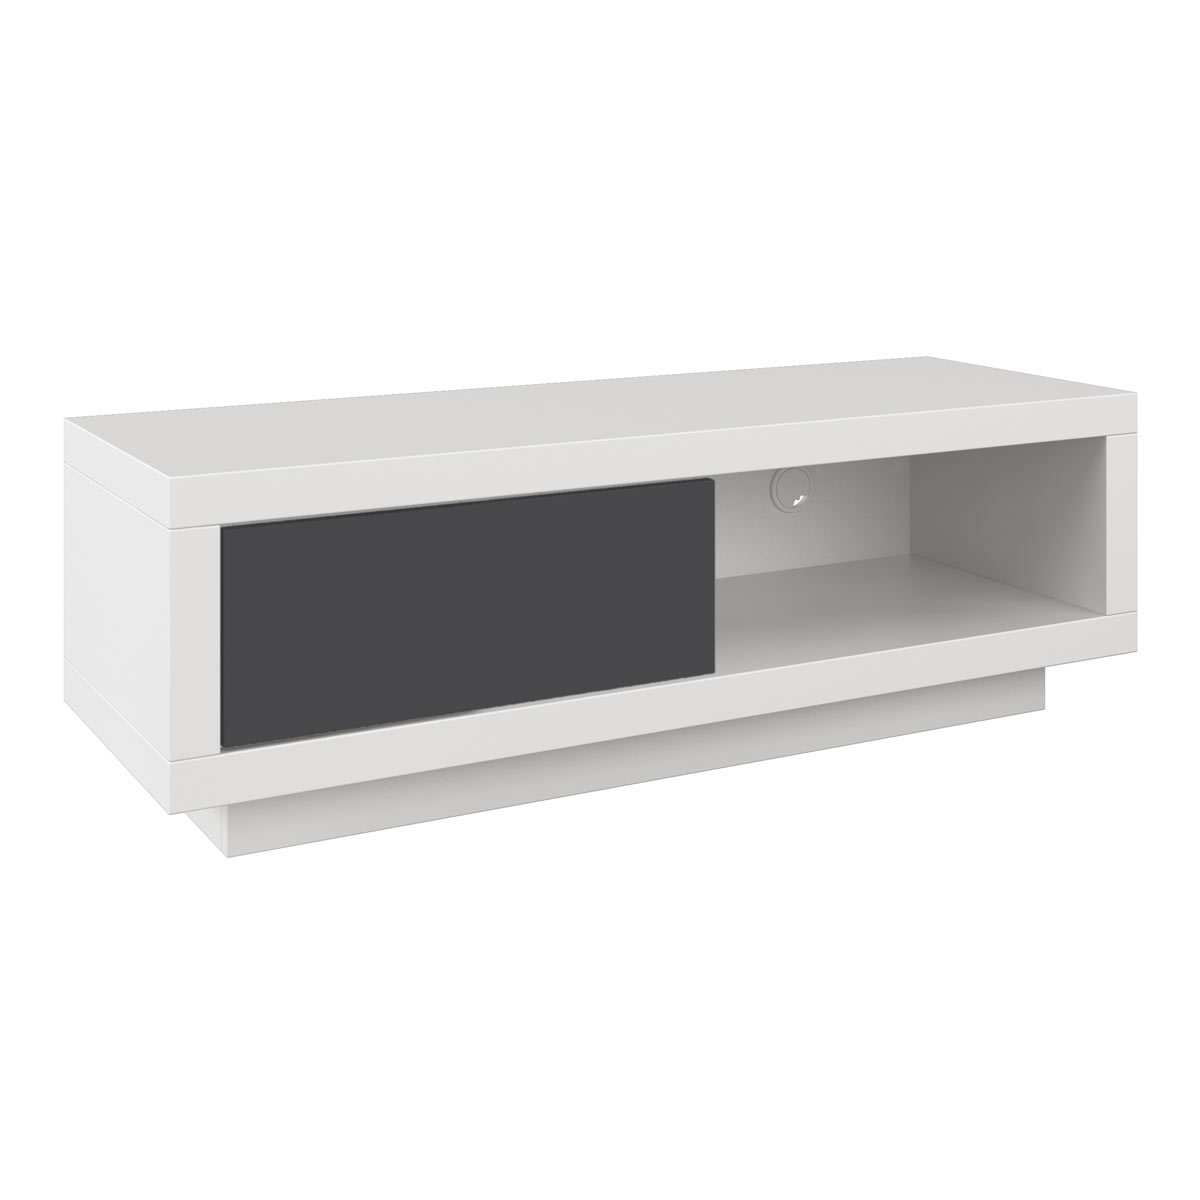 schnepel varic l blanc avec clapet meuble tv schnepel sur ldlc. Black Bedroom Furniture Sets. Home Design Ideas